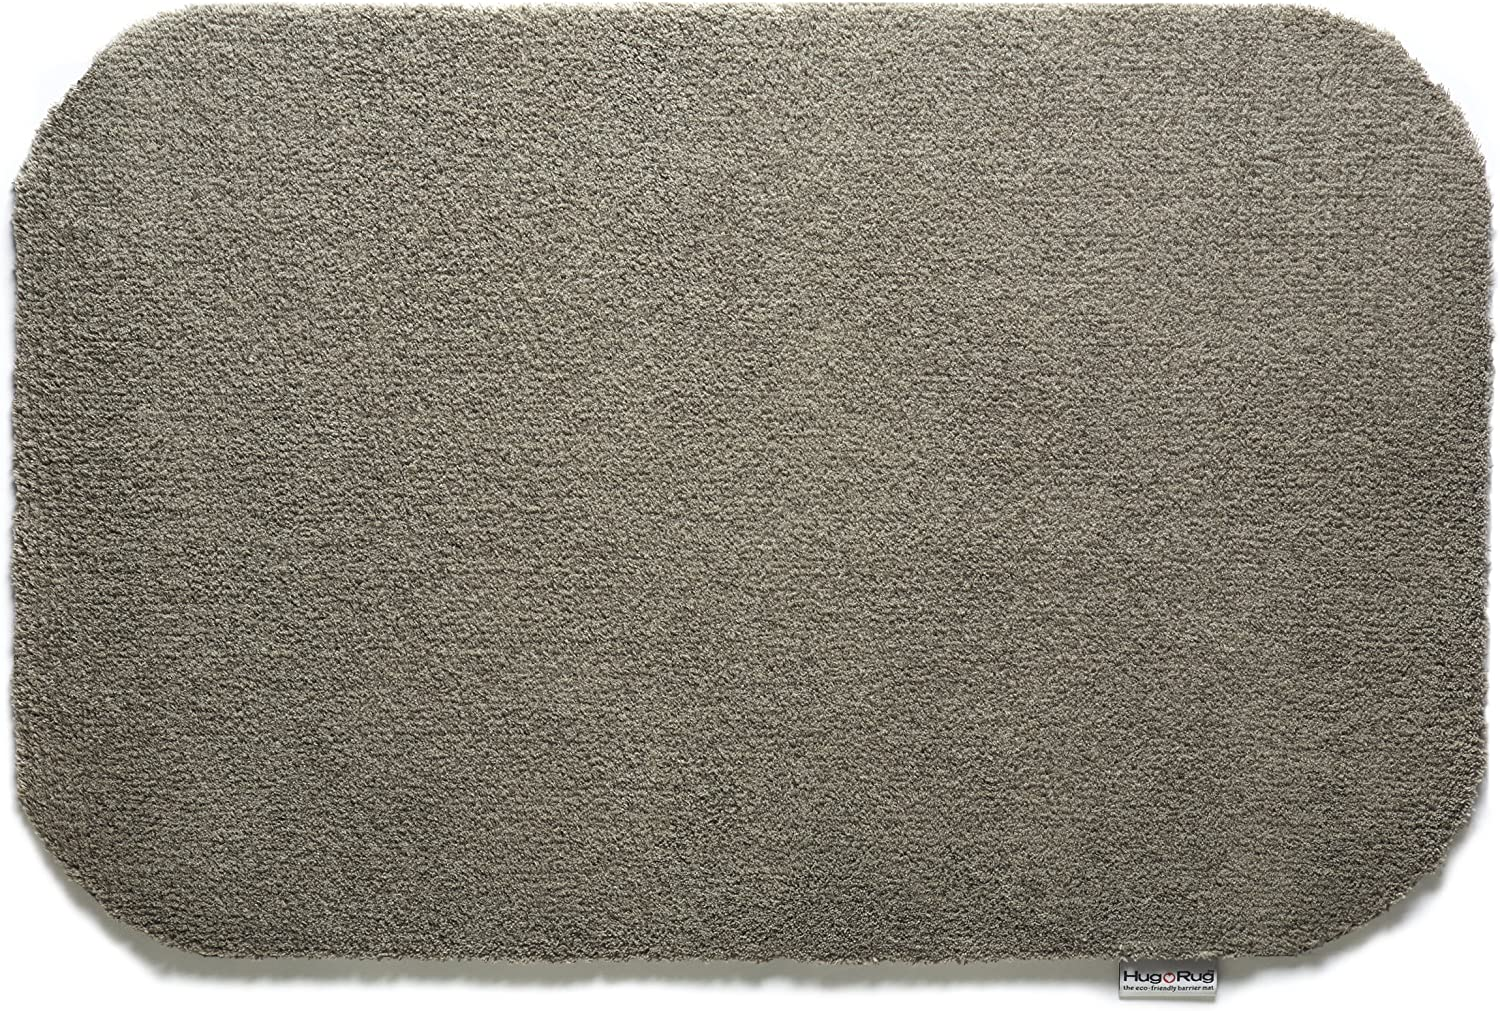 Bosmere Hug Rug Eco-Friendly Absorbent Dirt Trapping Indoor Washable Mat, 19.5  x 29.5 , Mocha